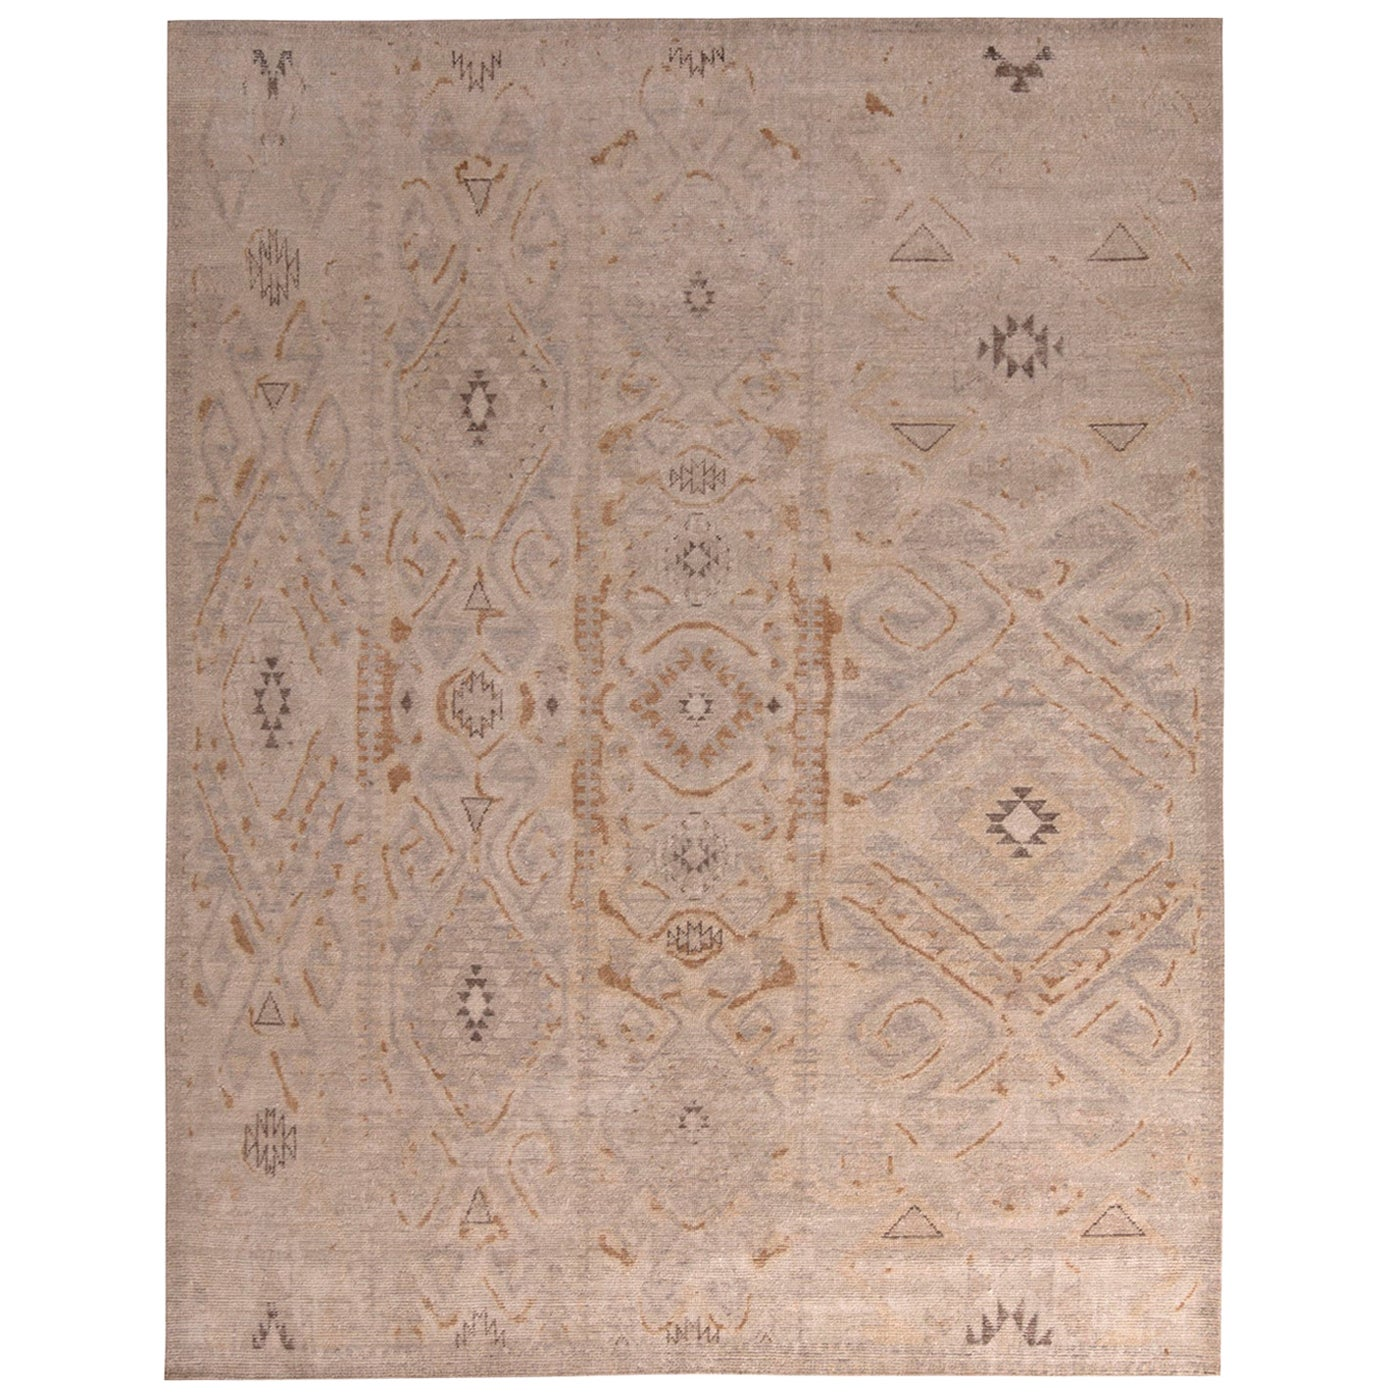 Rug & Kilim's Homage Geometric Beige Brown and Gray-Blue Wool Custom Rug